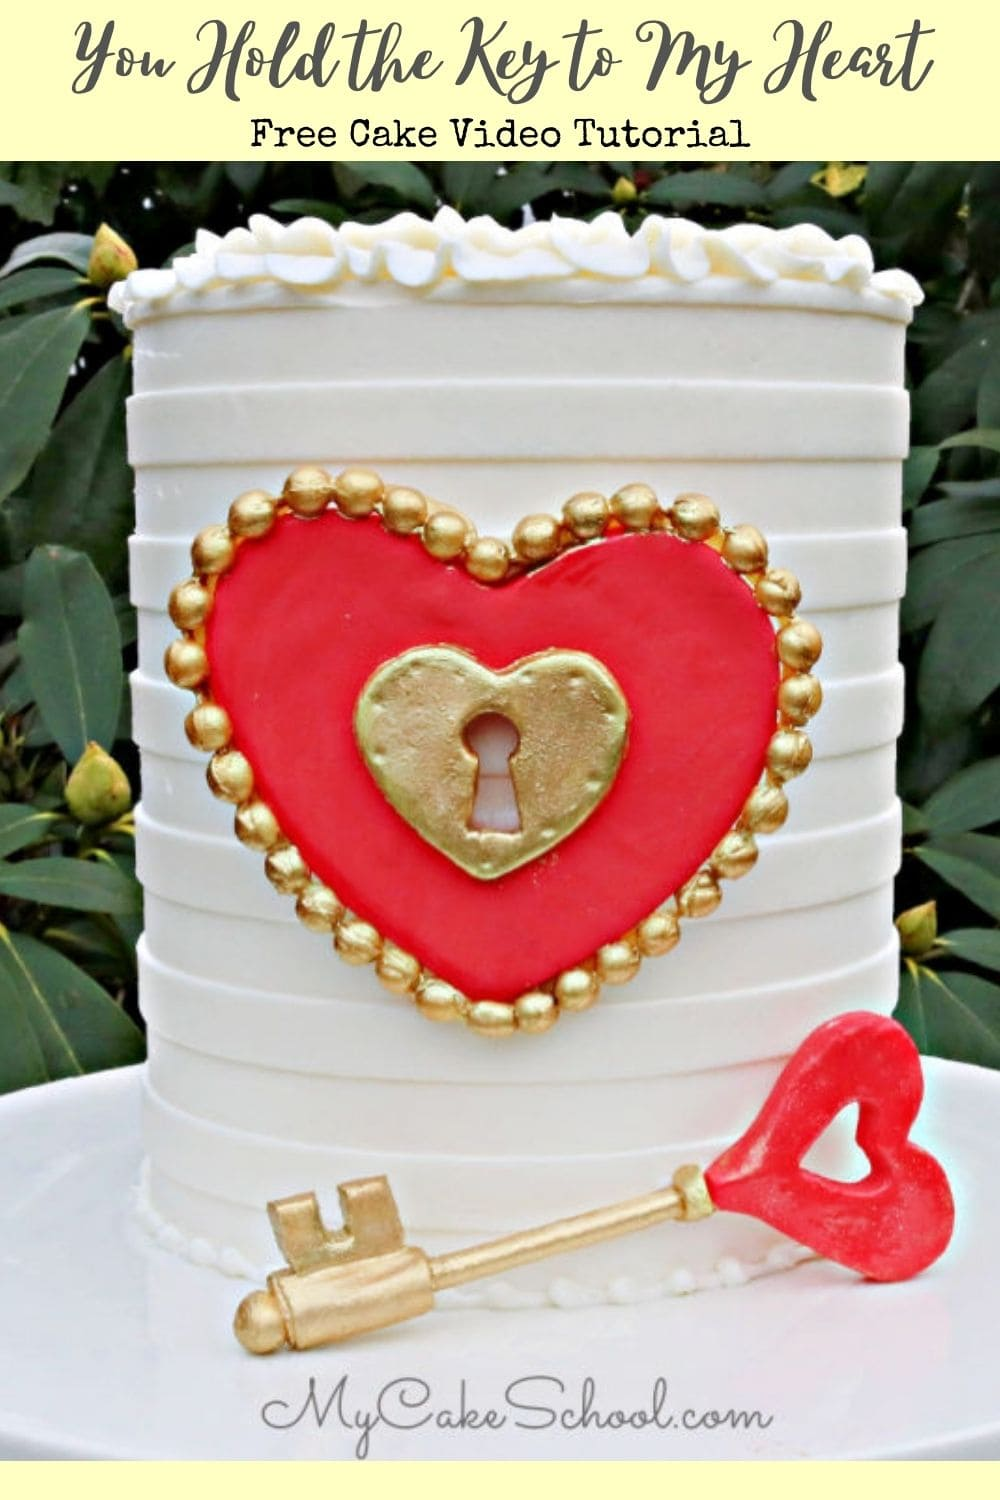 You Hold the Key to My Heart- Free Cake Video Tutorial